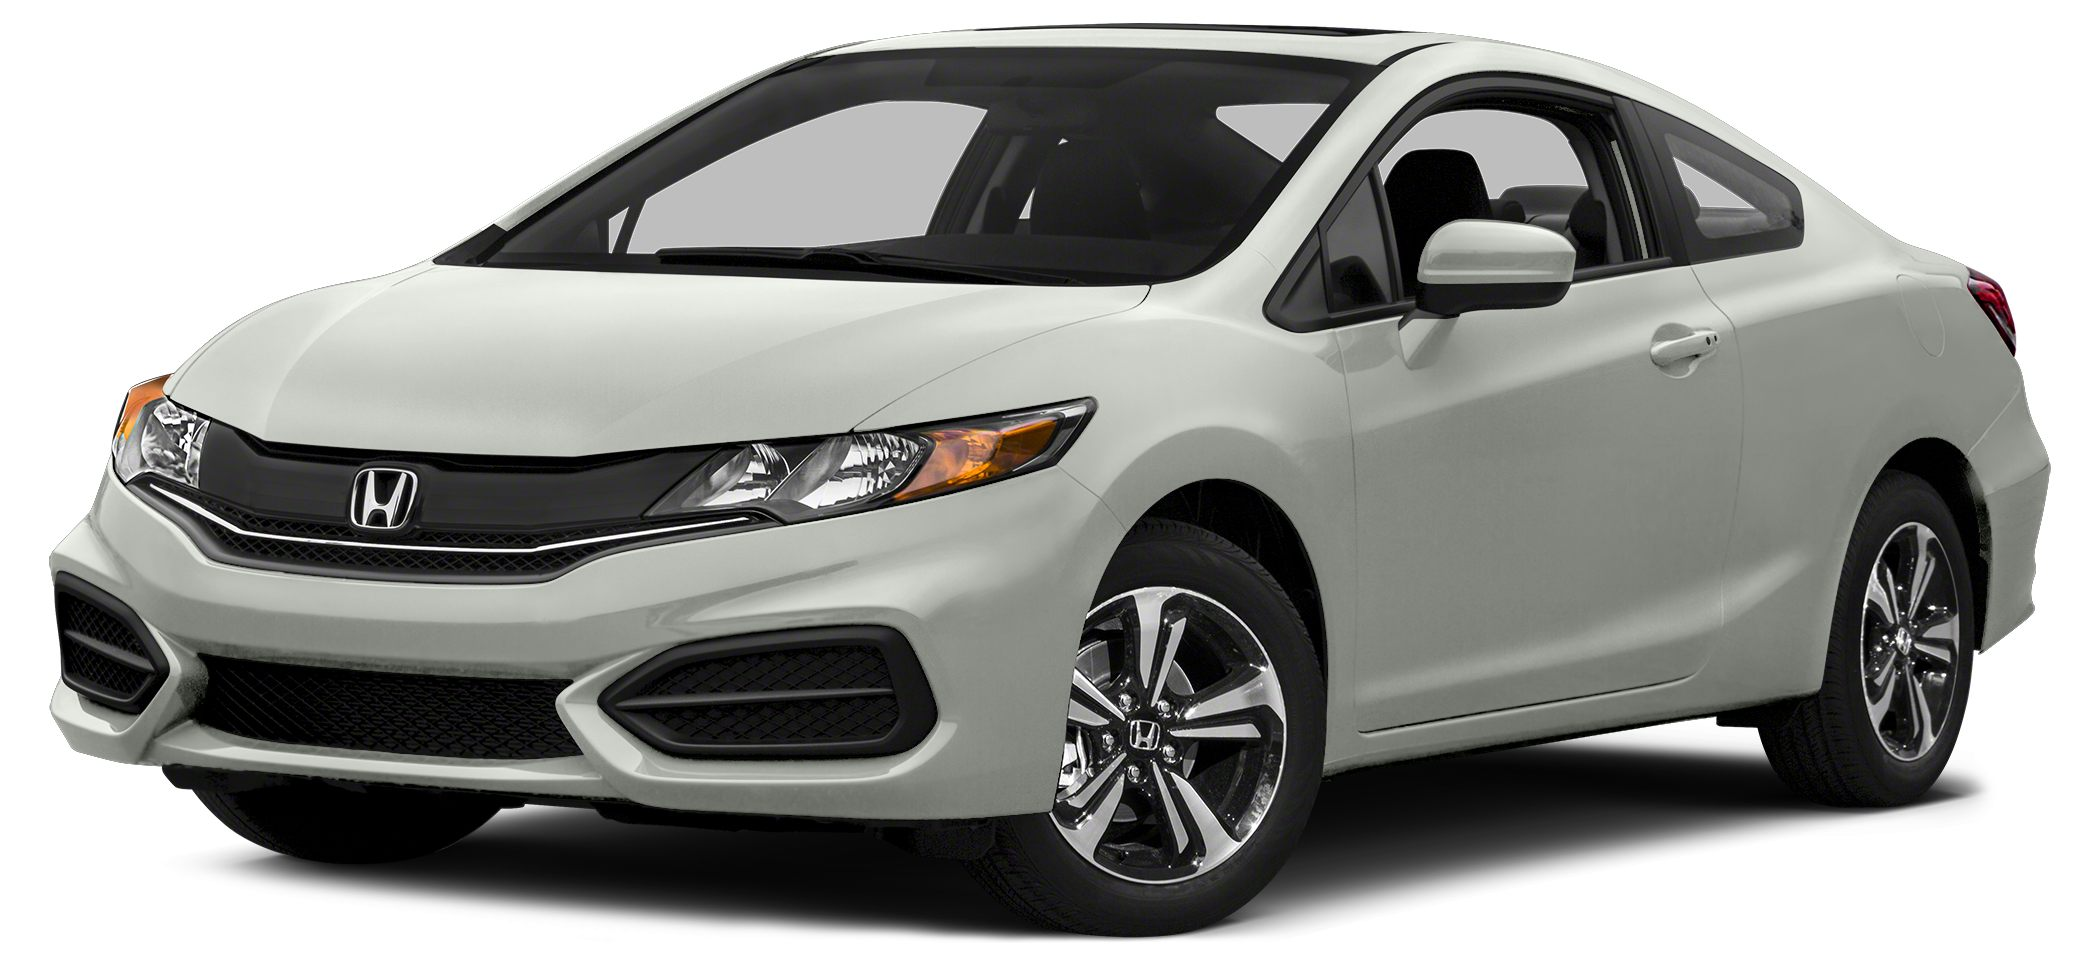 2014 Honda Civic EX Civic EX 2D Coupe CVT FWD Taffeta White and Gray Cloth Oh yeah You Win